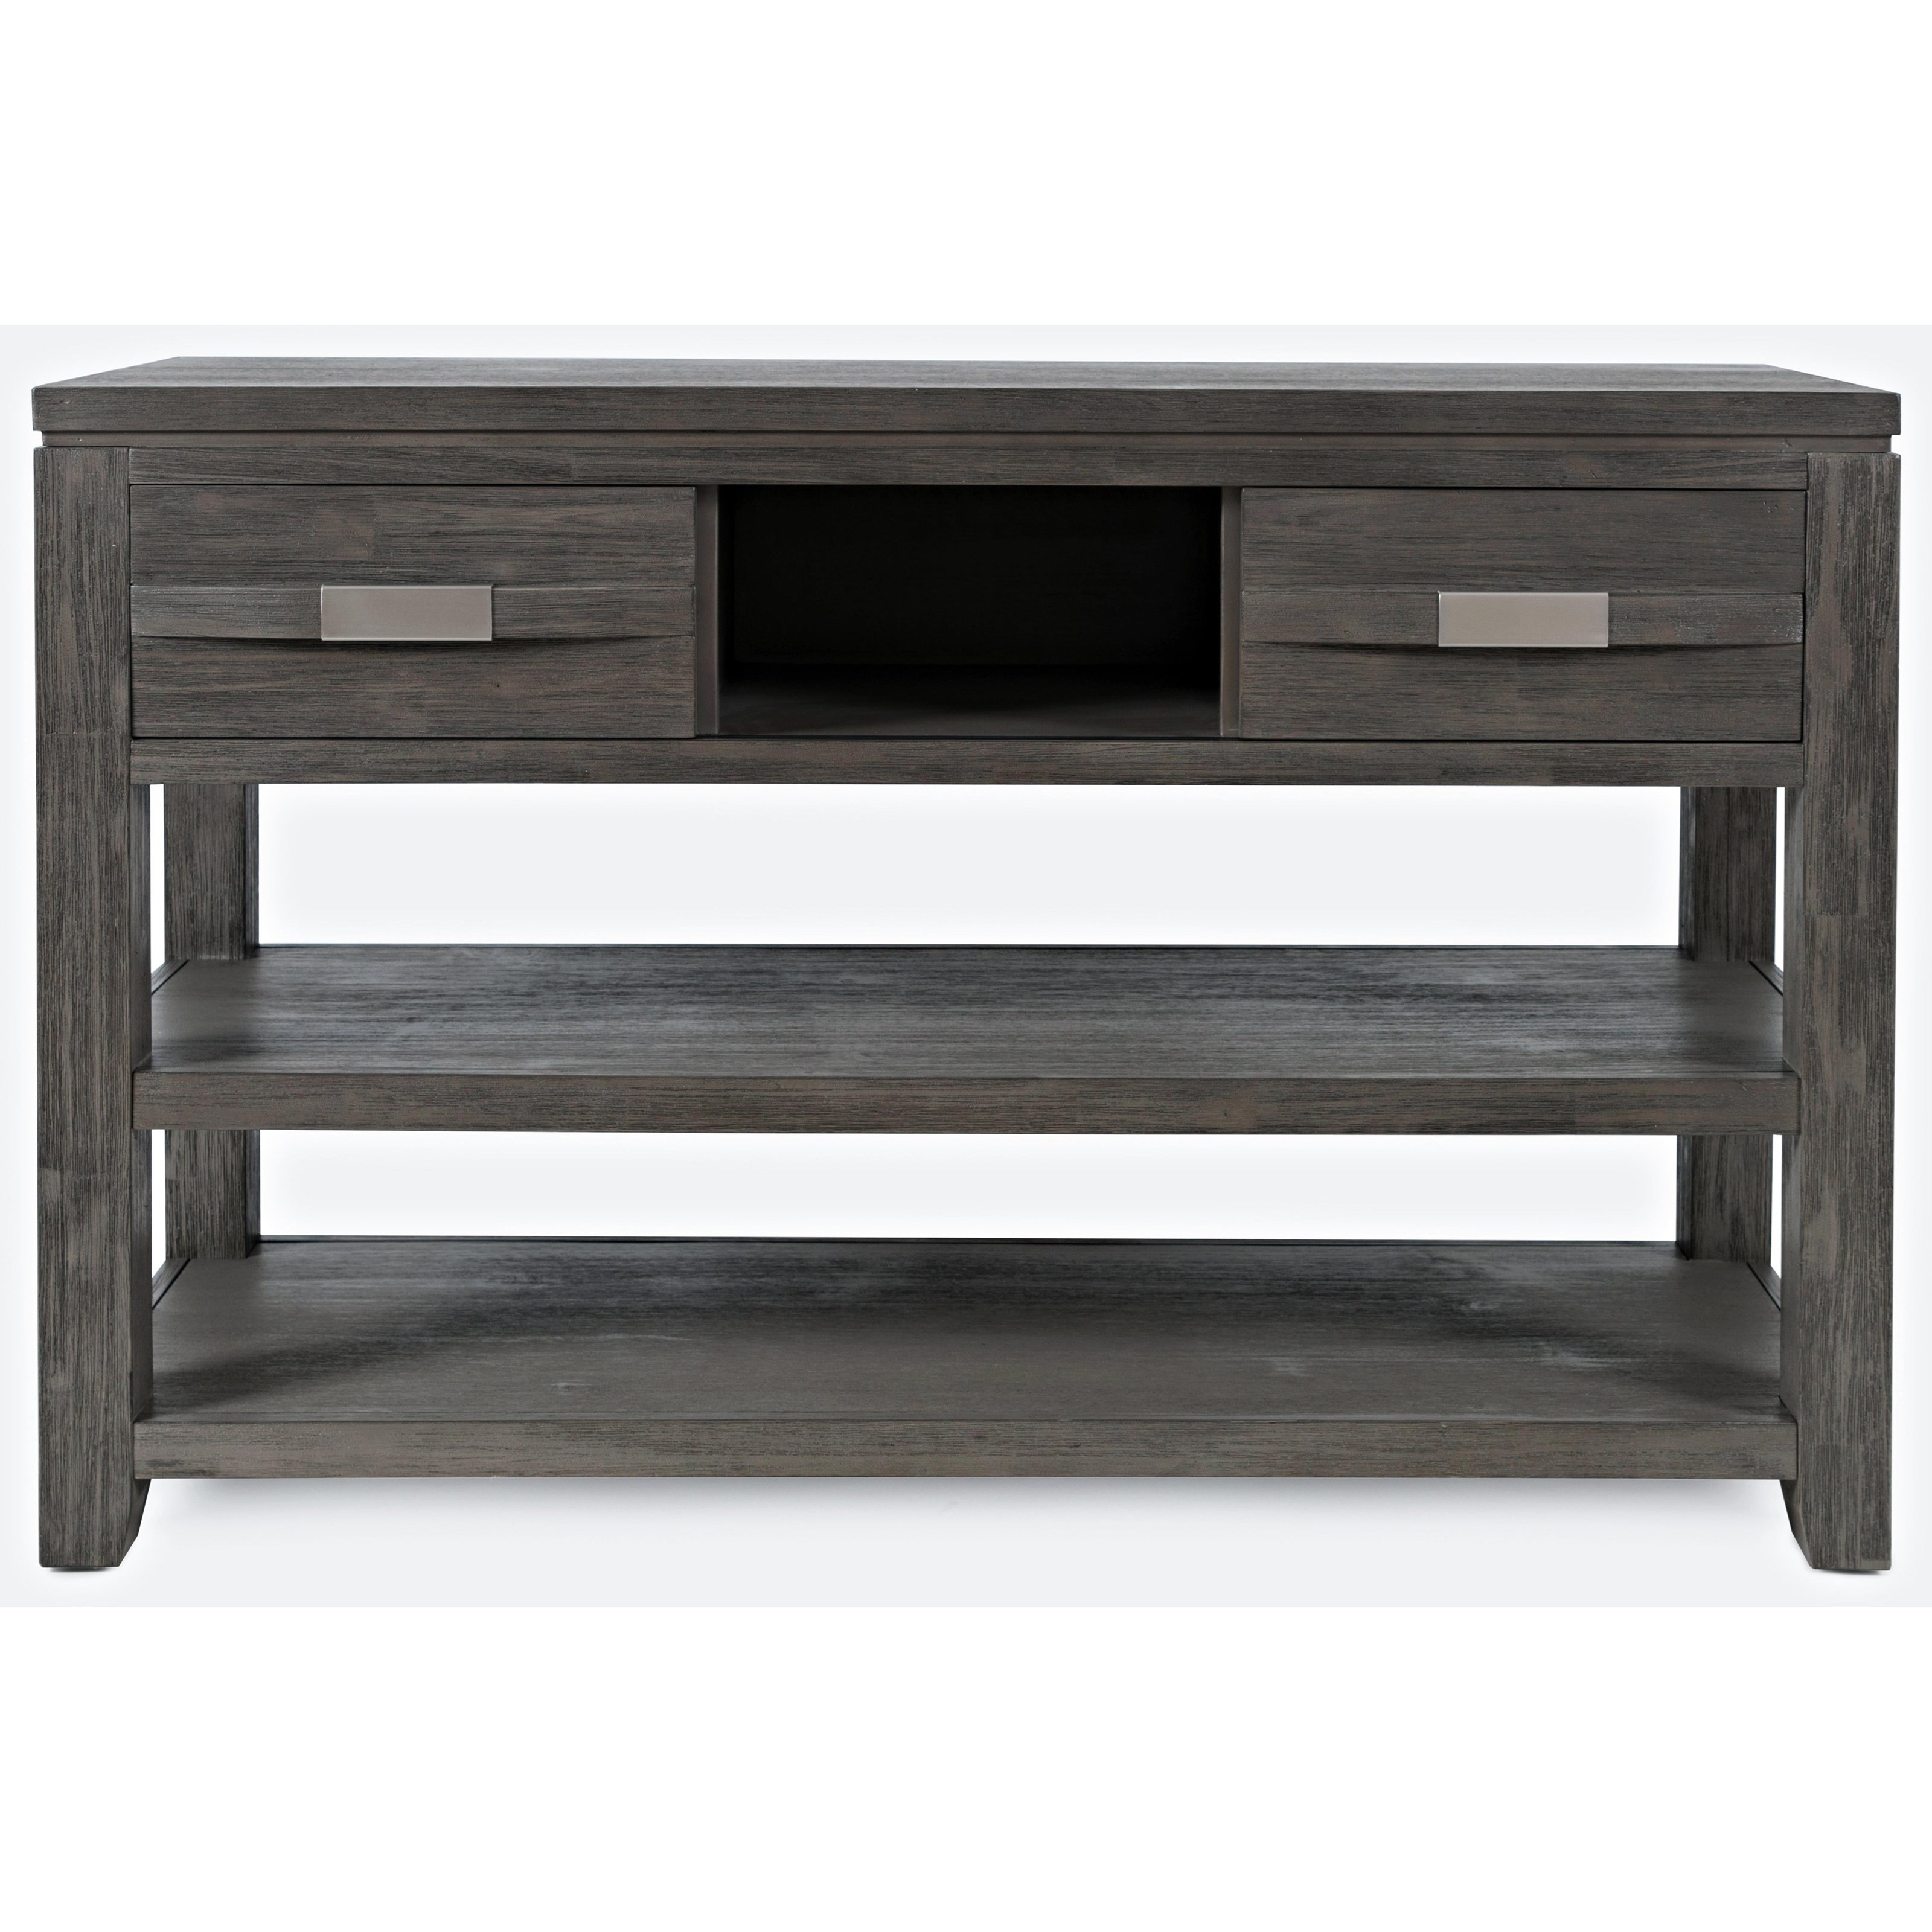 Altamonte  Sofa Table by Jofran at Lapeer Furniture & Mattress Center